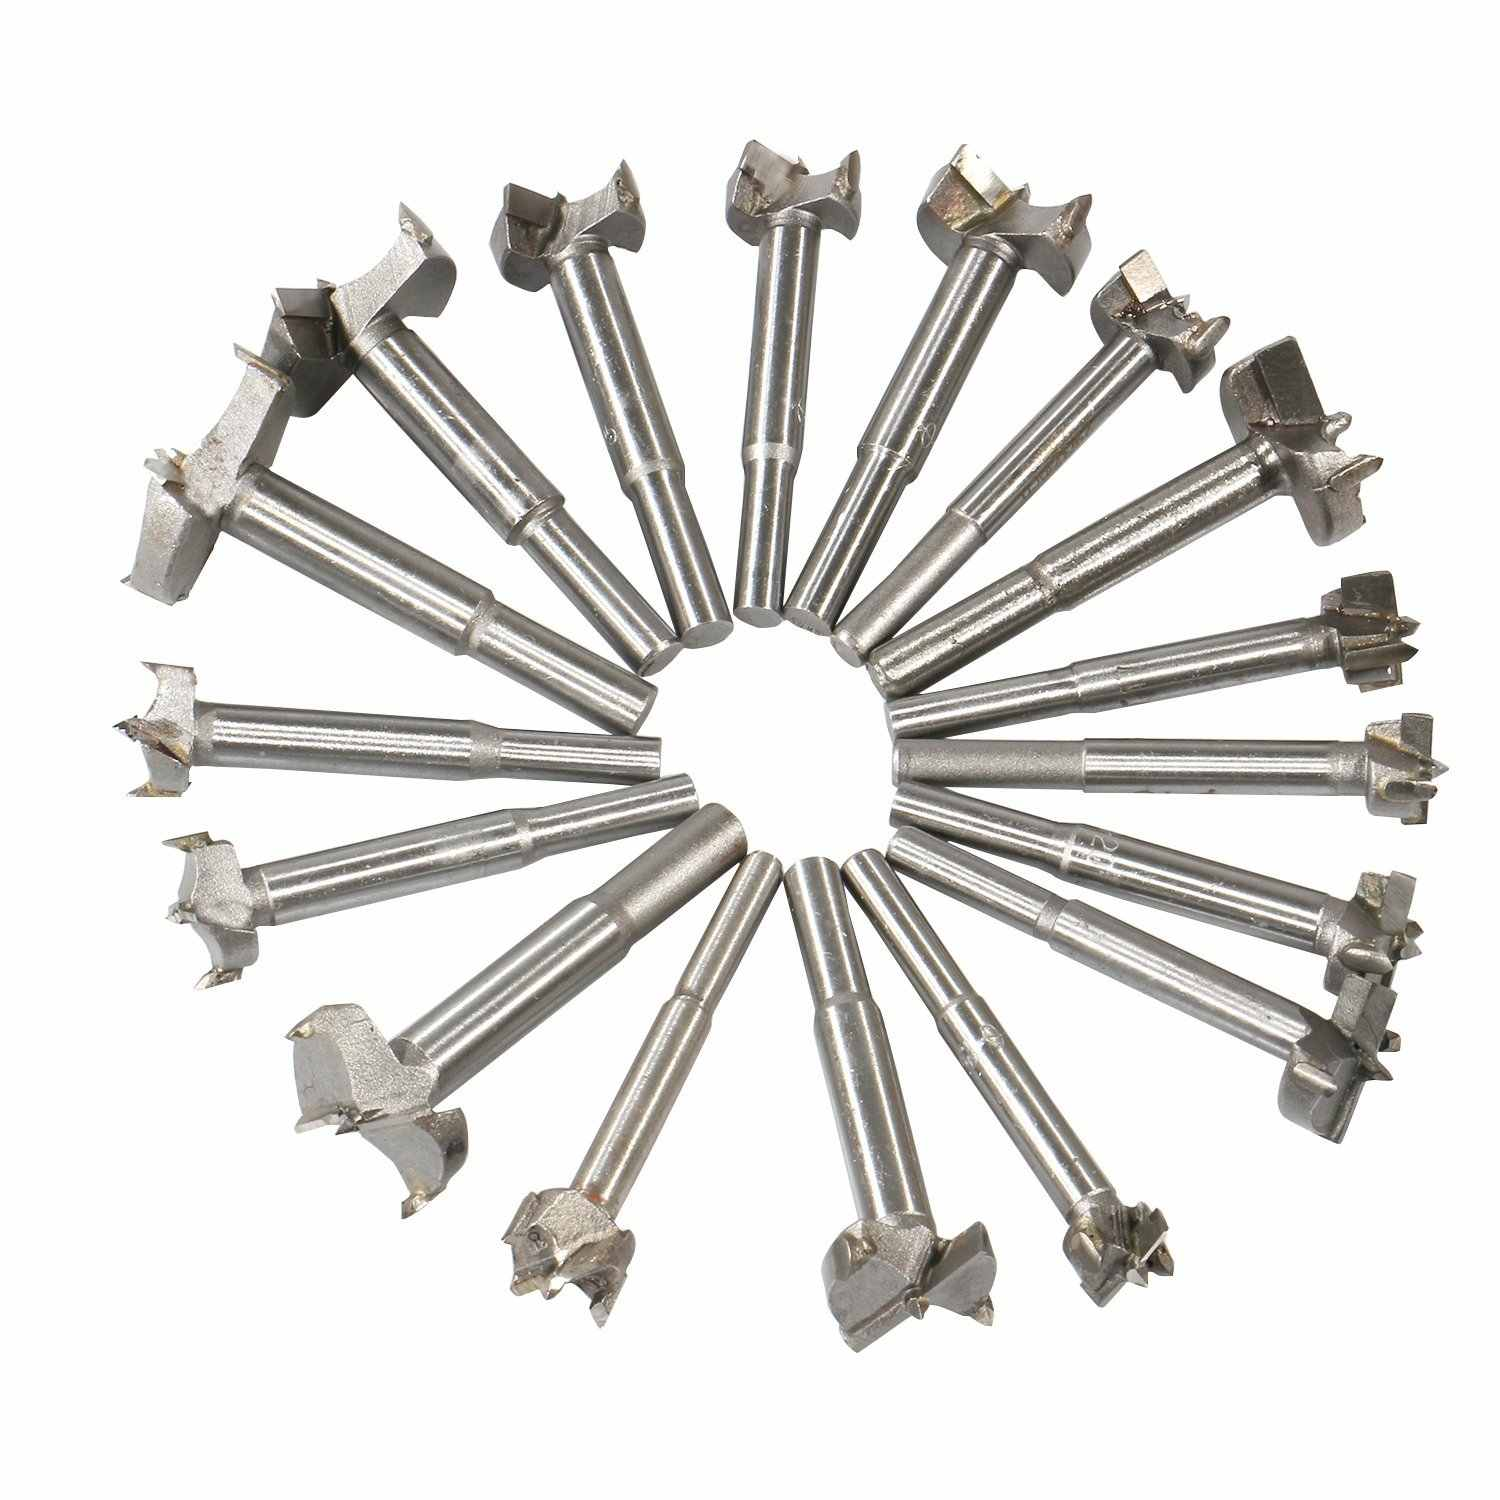 17Pcs Forstner Bit Set Drill Bits Tungsten High Speed Steel Woodworking Hole Saw Set Wood Drill Bit Auger Opener for Woodworking